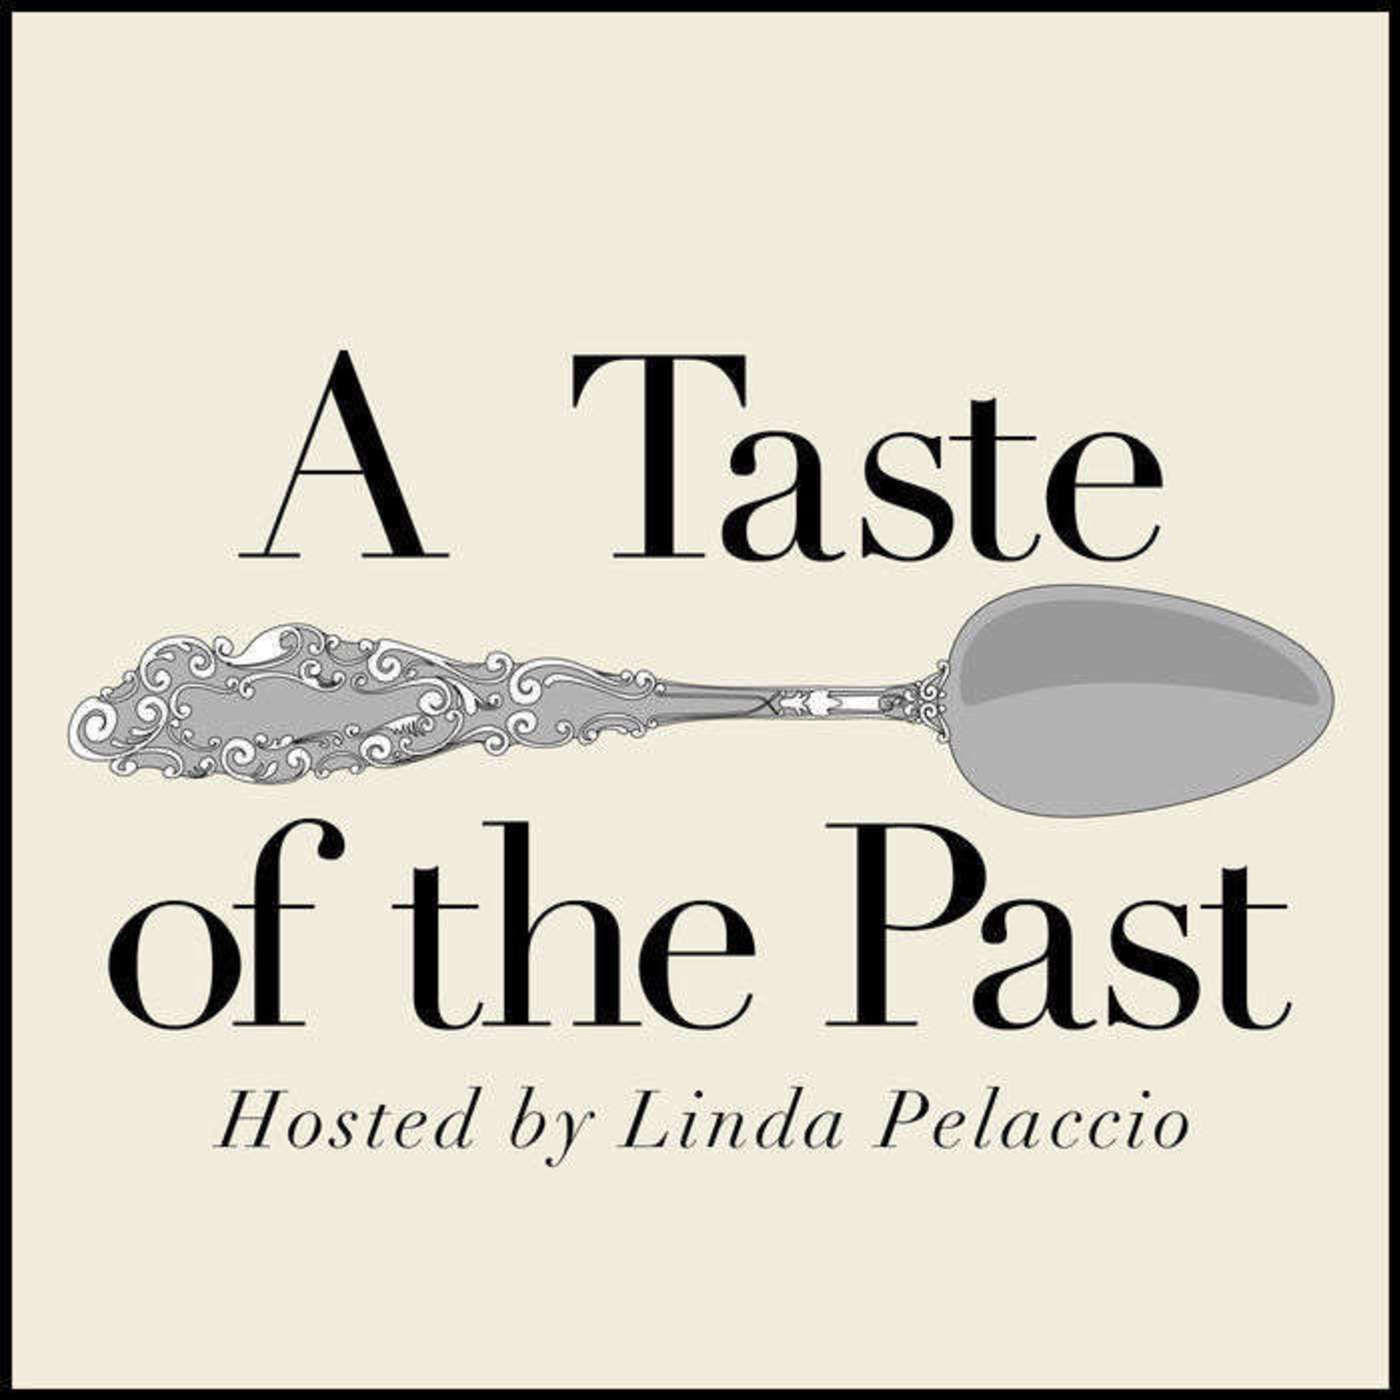 Episode 151: Fried Chicken: Tracing the African Roots with Michael Twitty